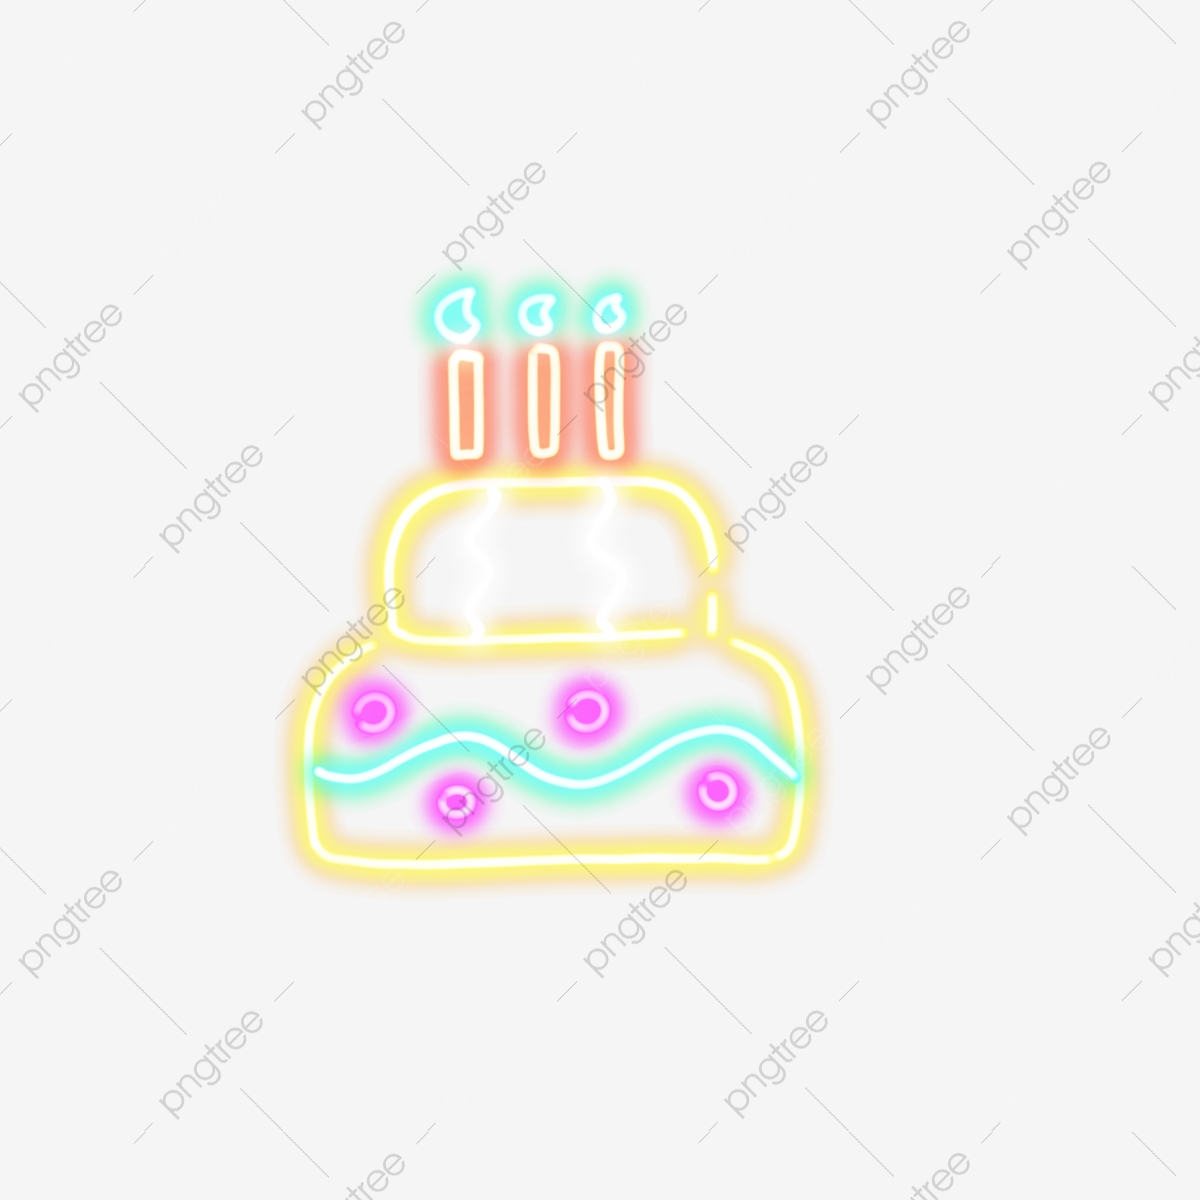 Incredible Neon Birthday Cake Neon Birthday Cake Candle Png Transparent Funny Birthday Cards Online Alyptdamsfinfo